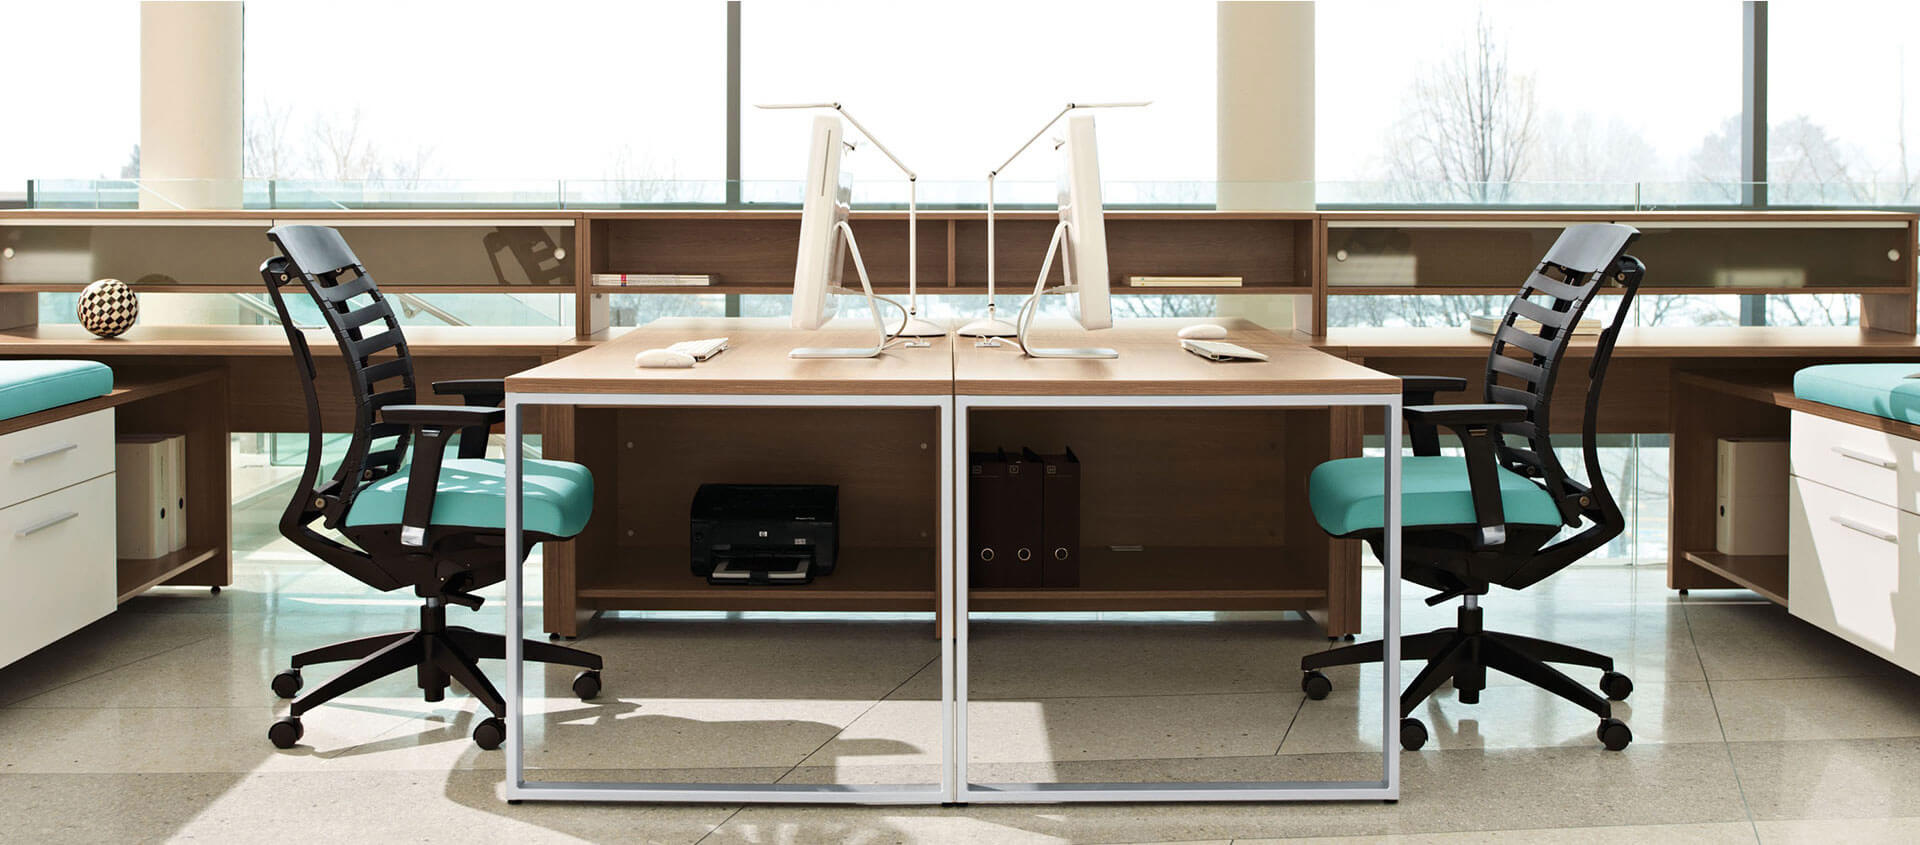 Work Tables For Home Office The Great Debate Offices Vs Cubicles